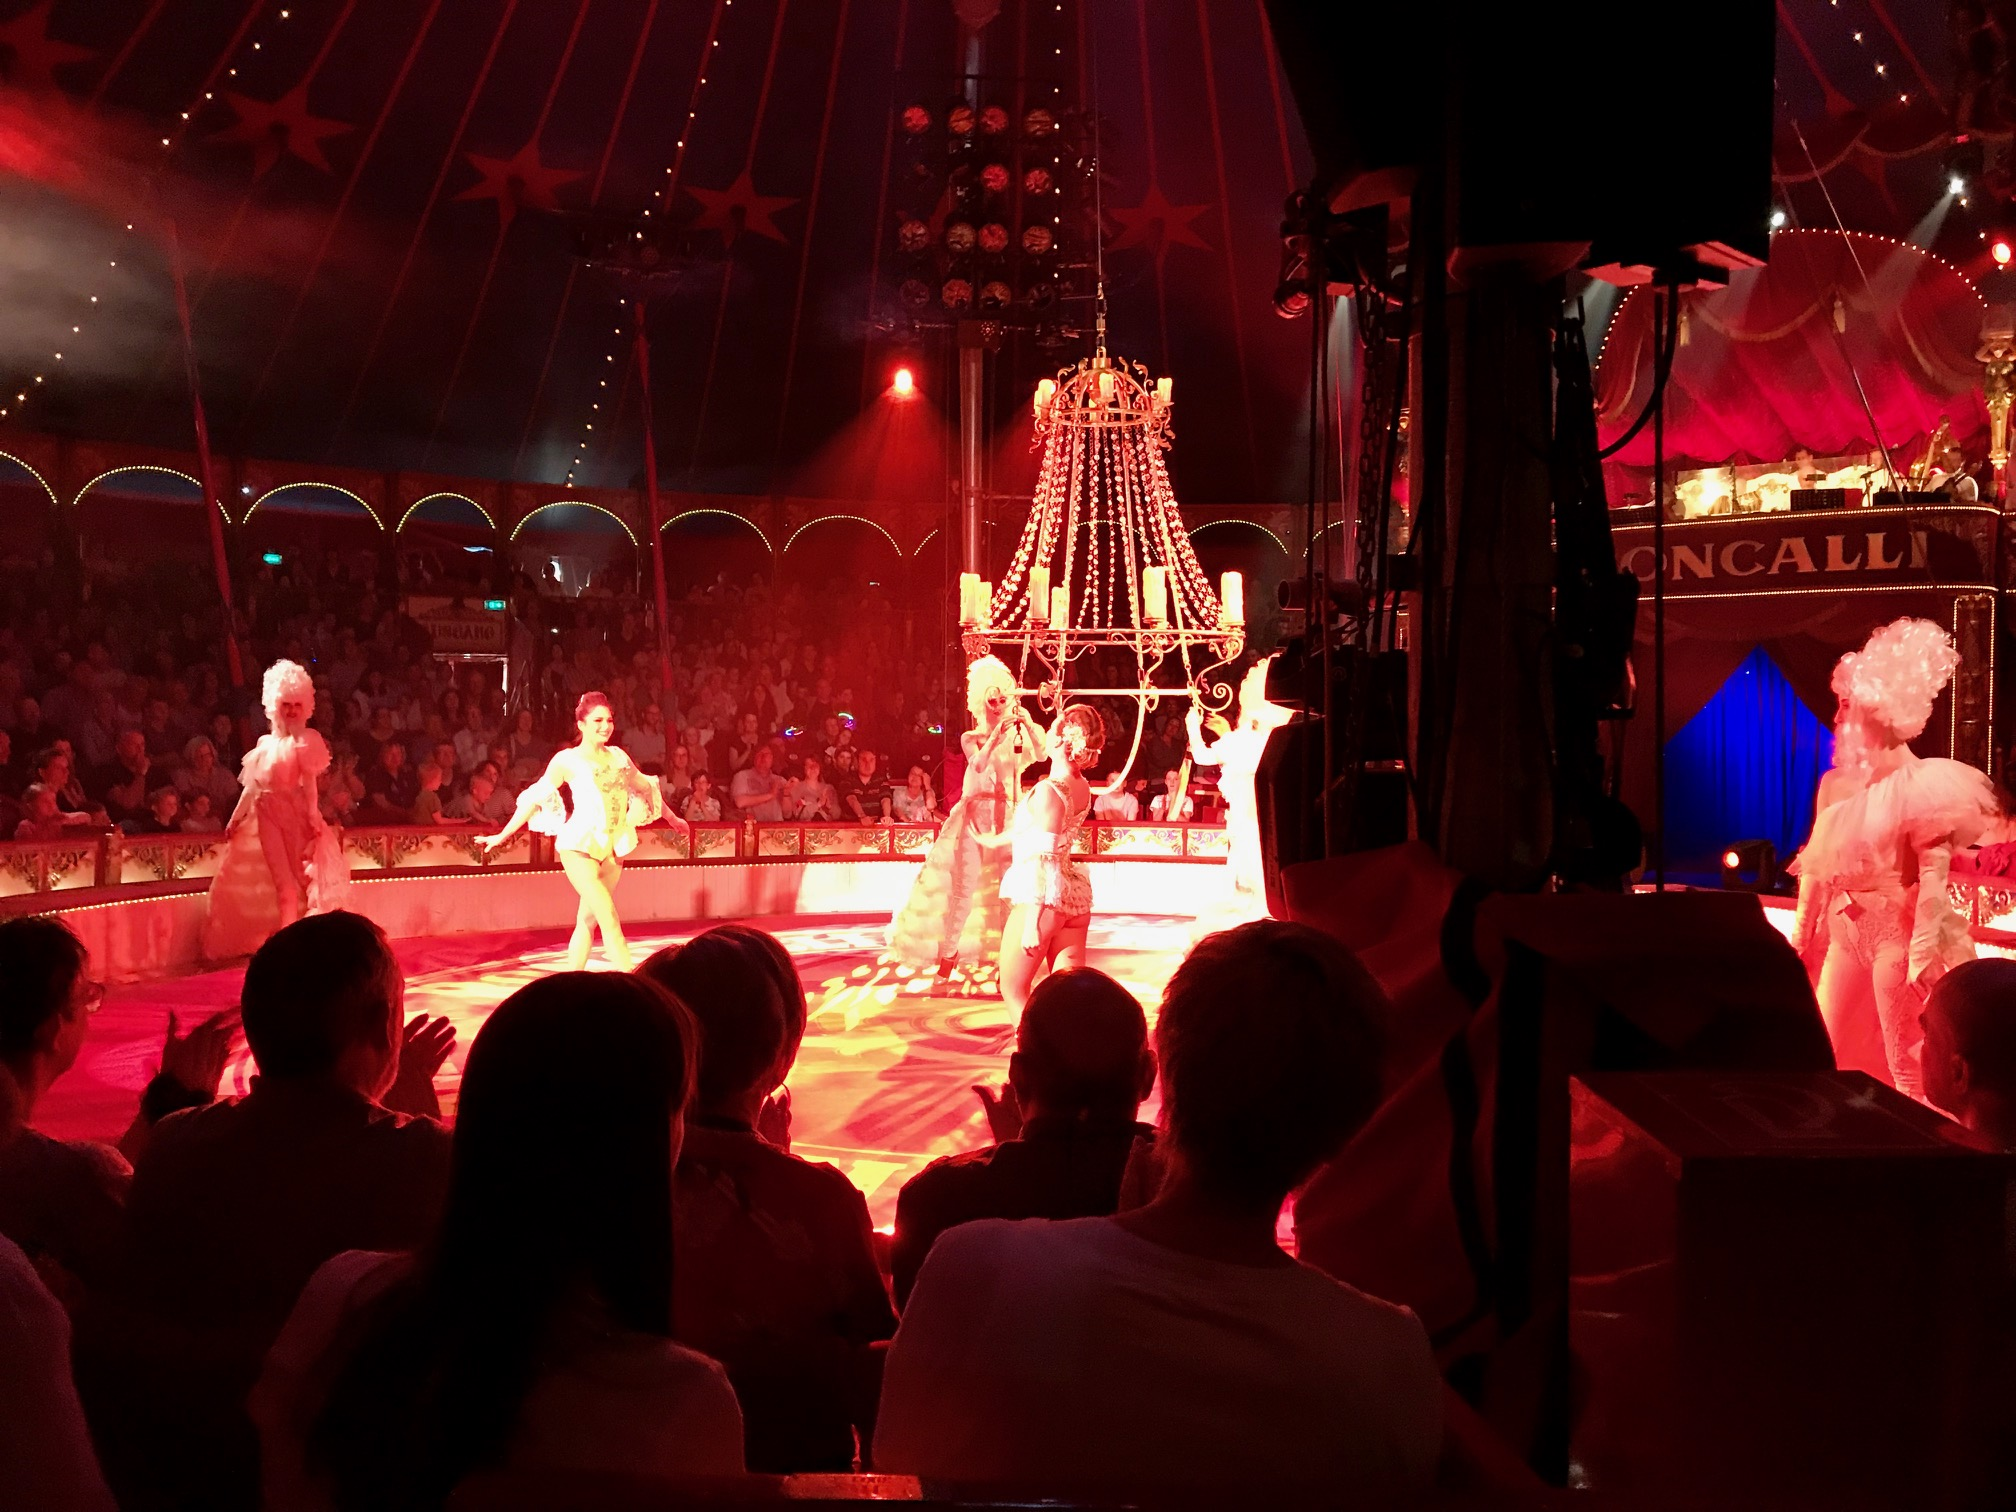 Circus Roncalli in Aachen